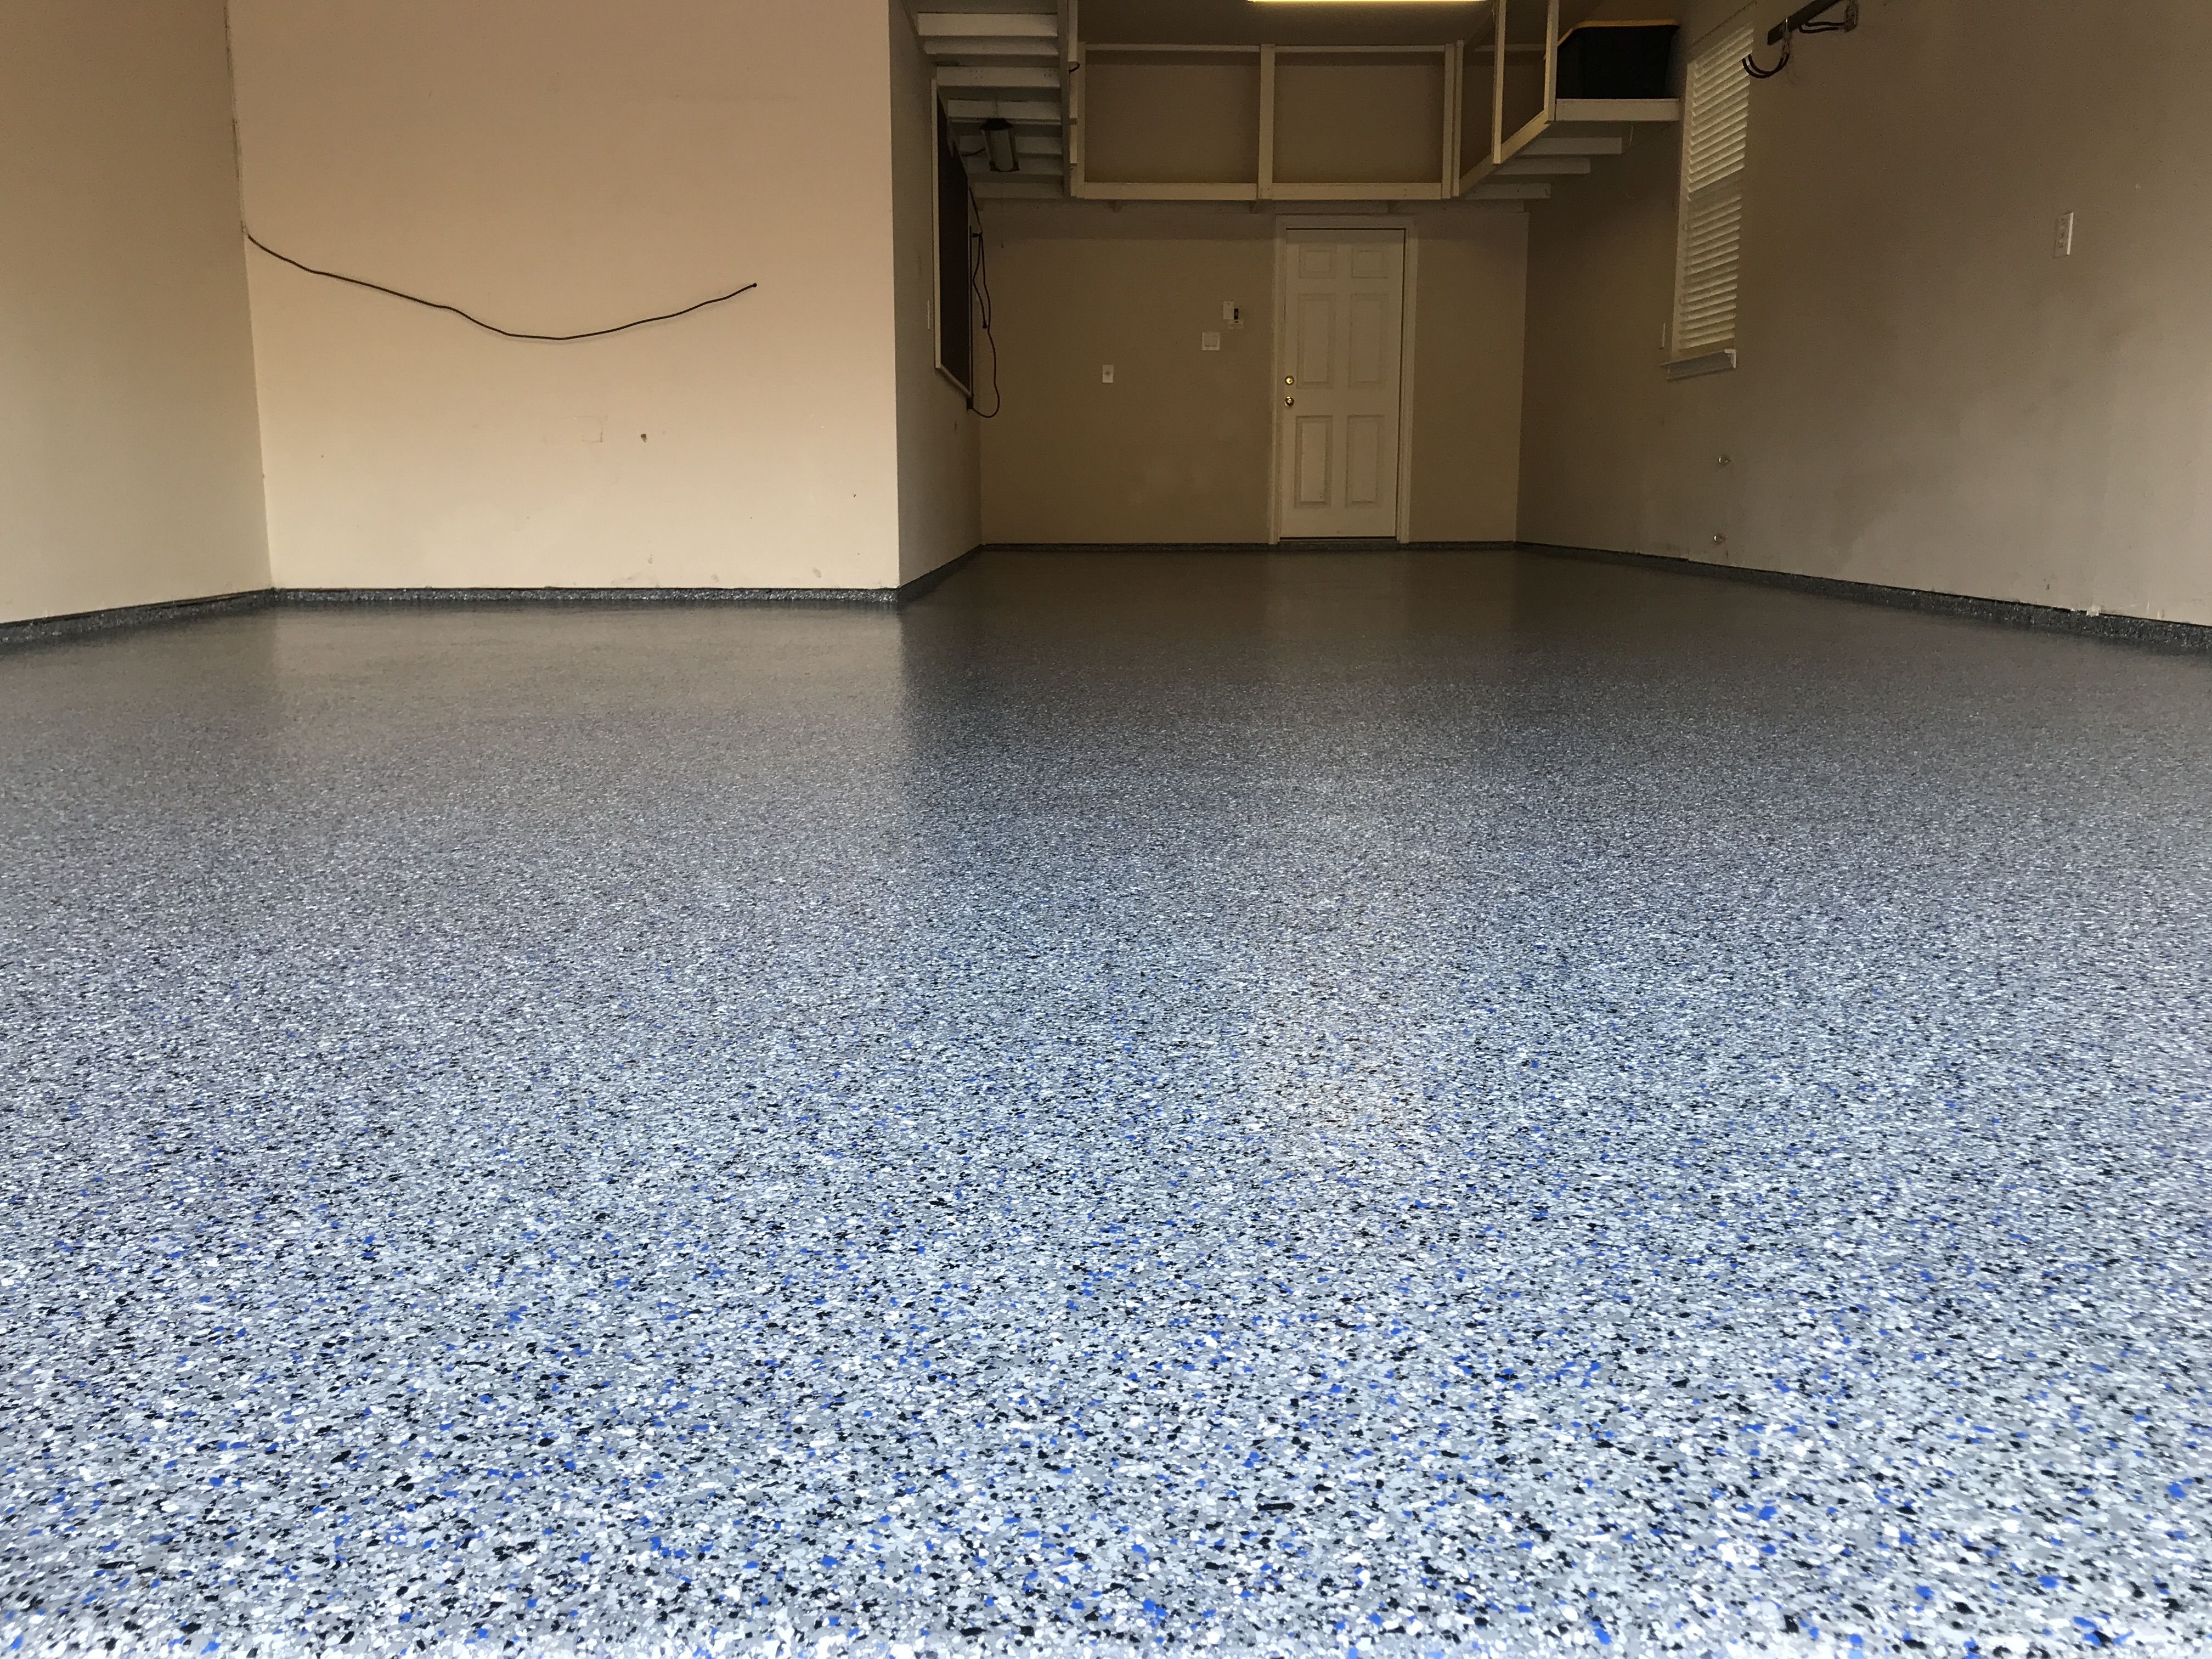 Classic Marble W White And Blue Done In Frisco Texas Polyaspartic Floorpaint Garagefloor Flooring Contractor Garage Floor Garage Floor Coatings